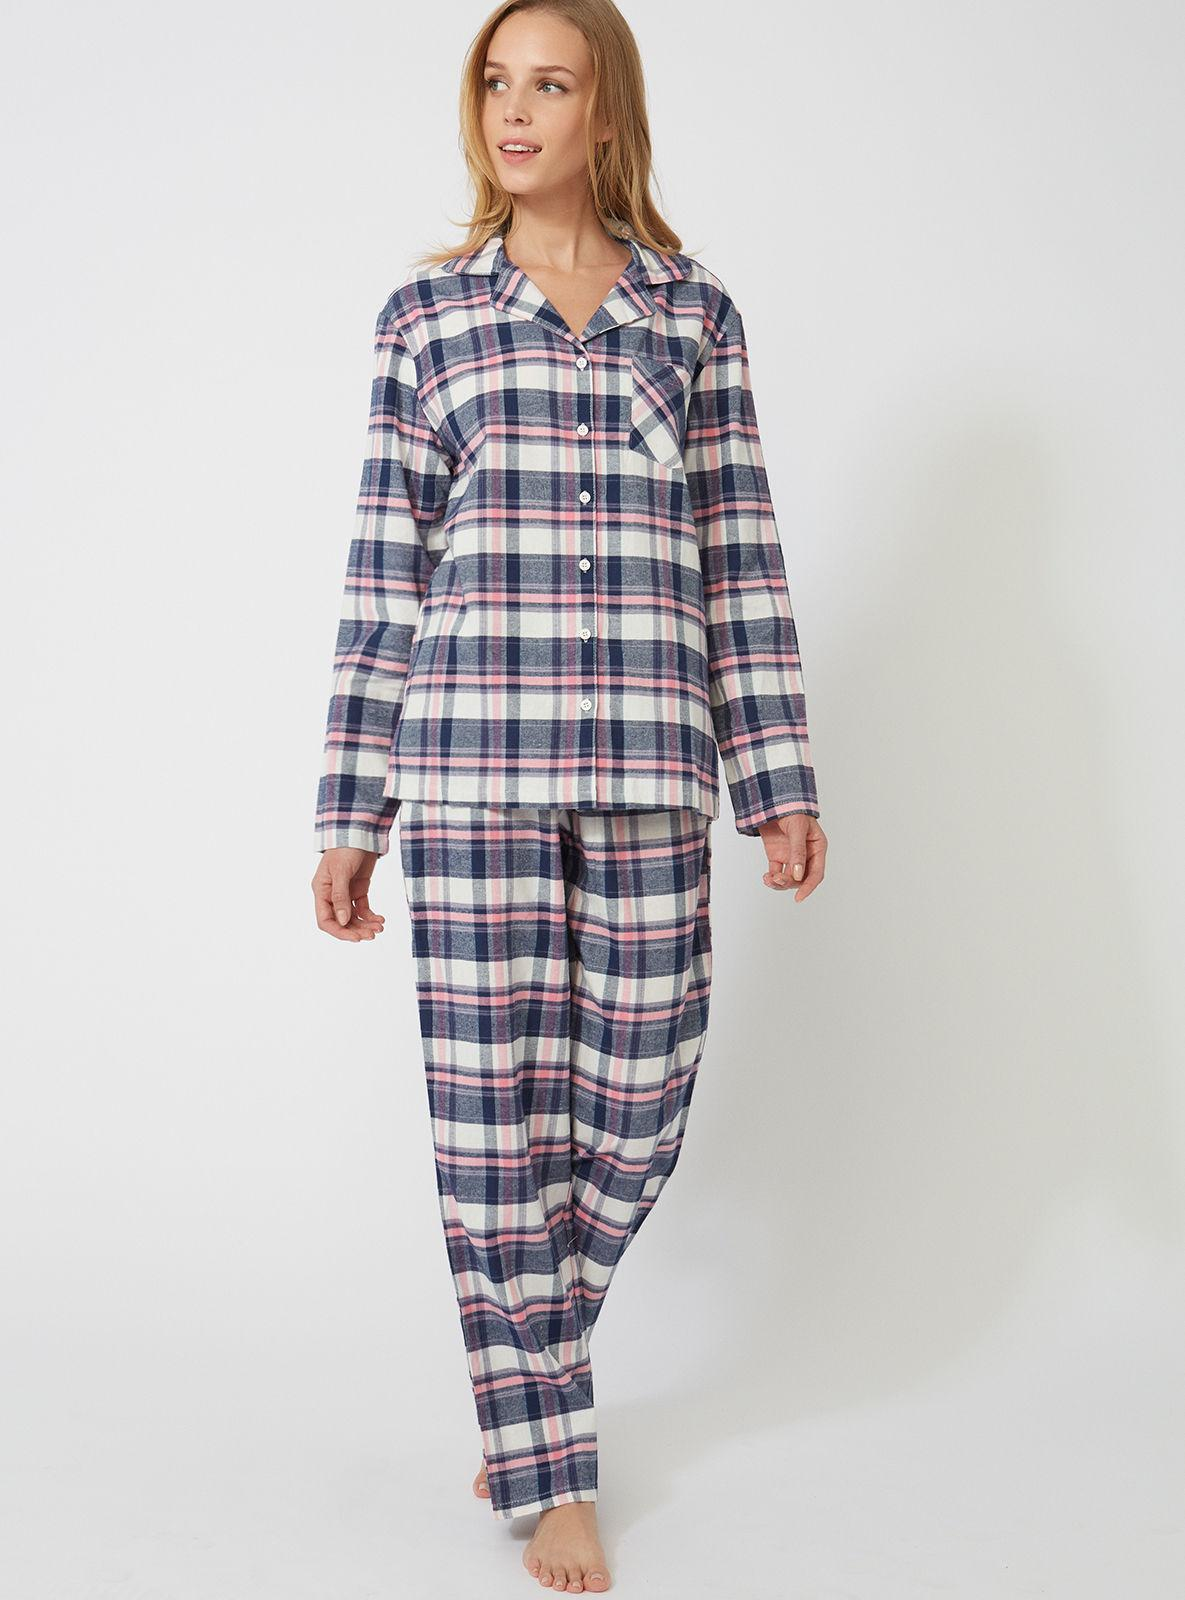 6a96c7e9b0 Lyst - Boux Avenue Navy Check Pjs In A Bag in Blue